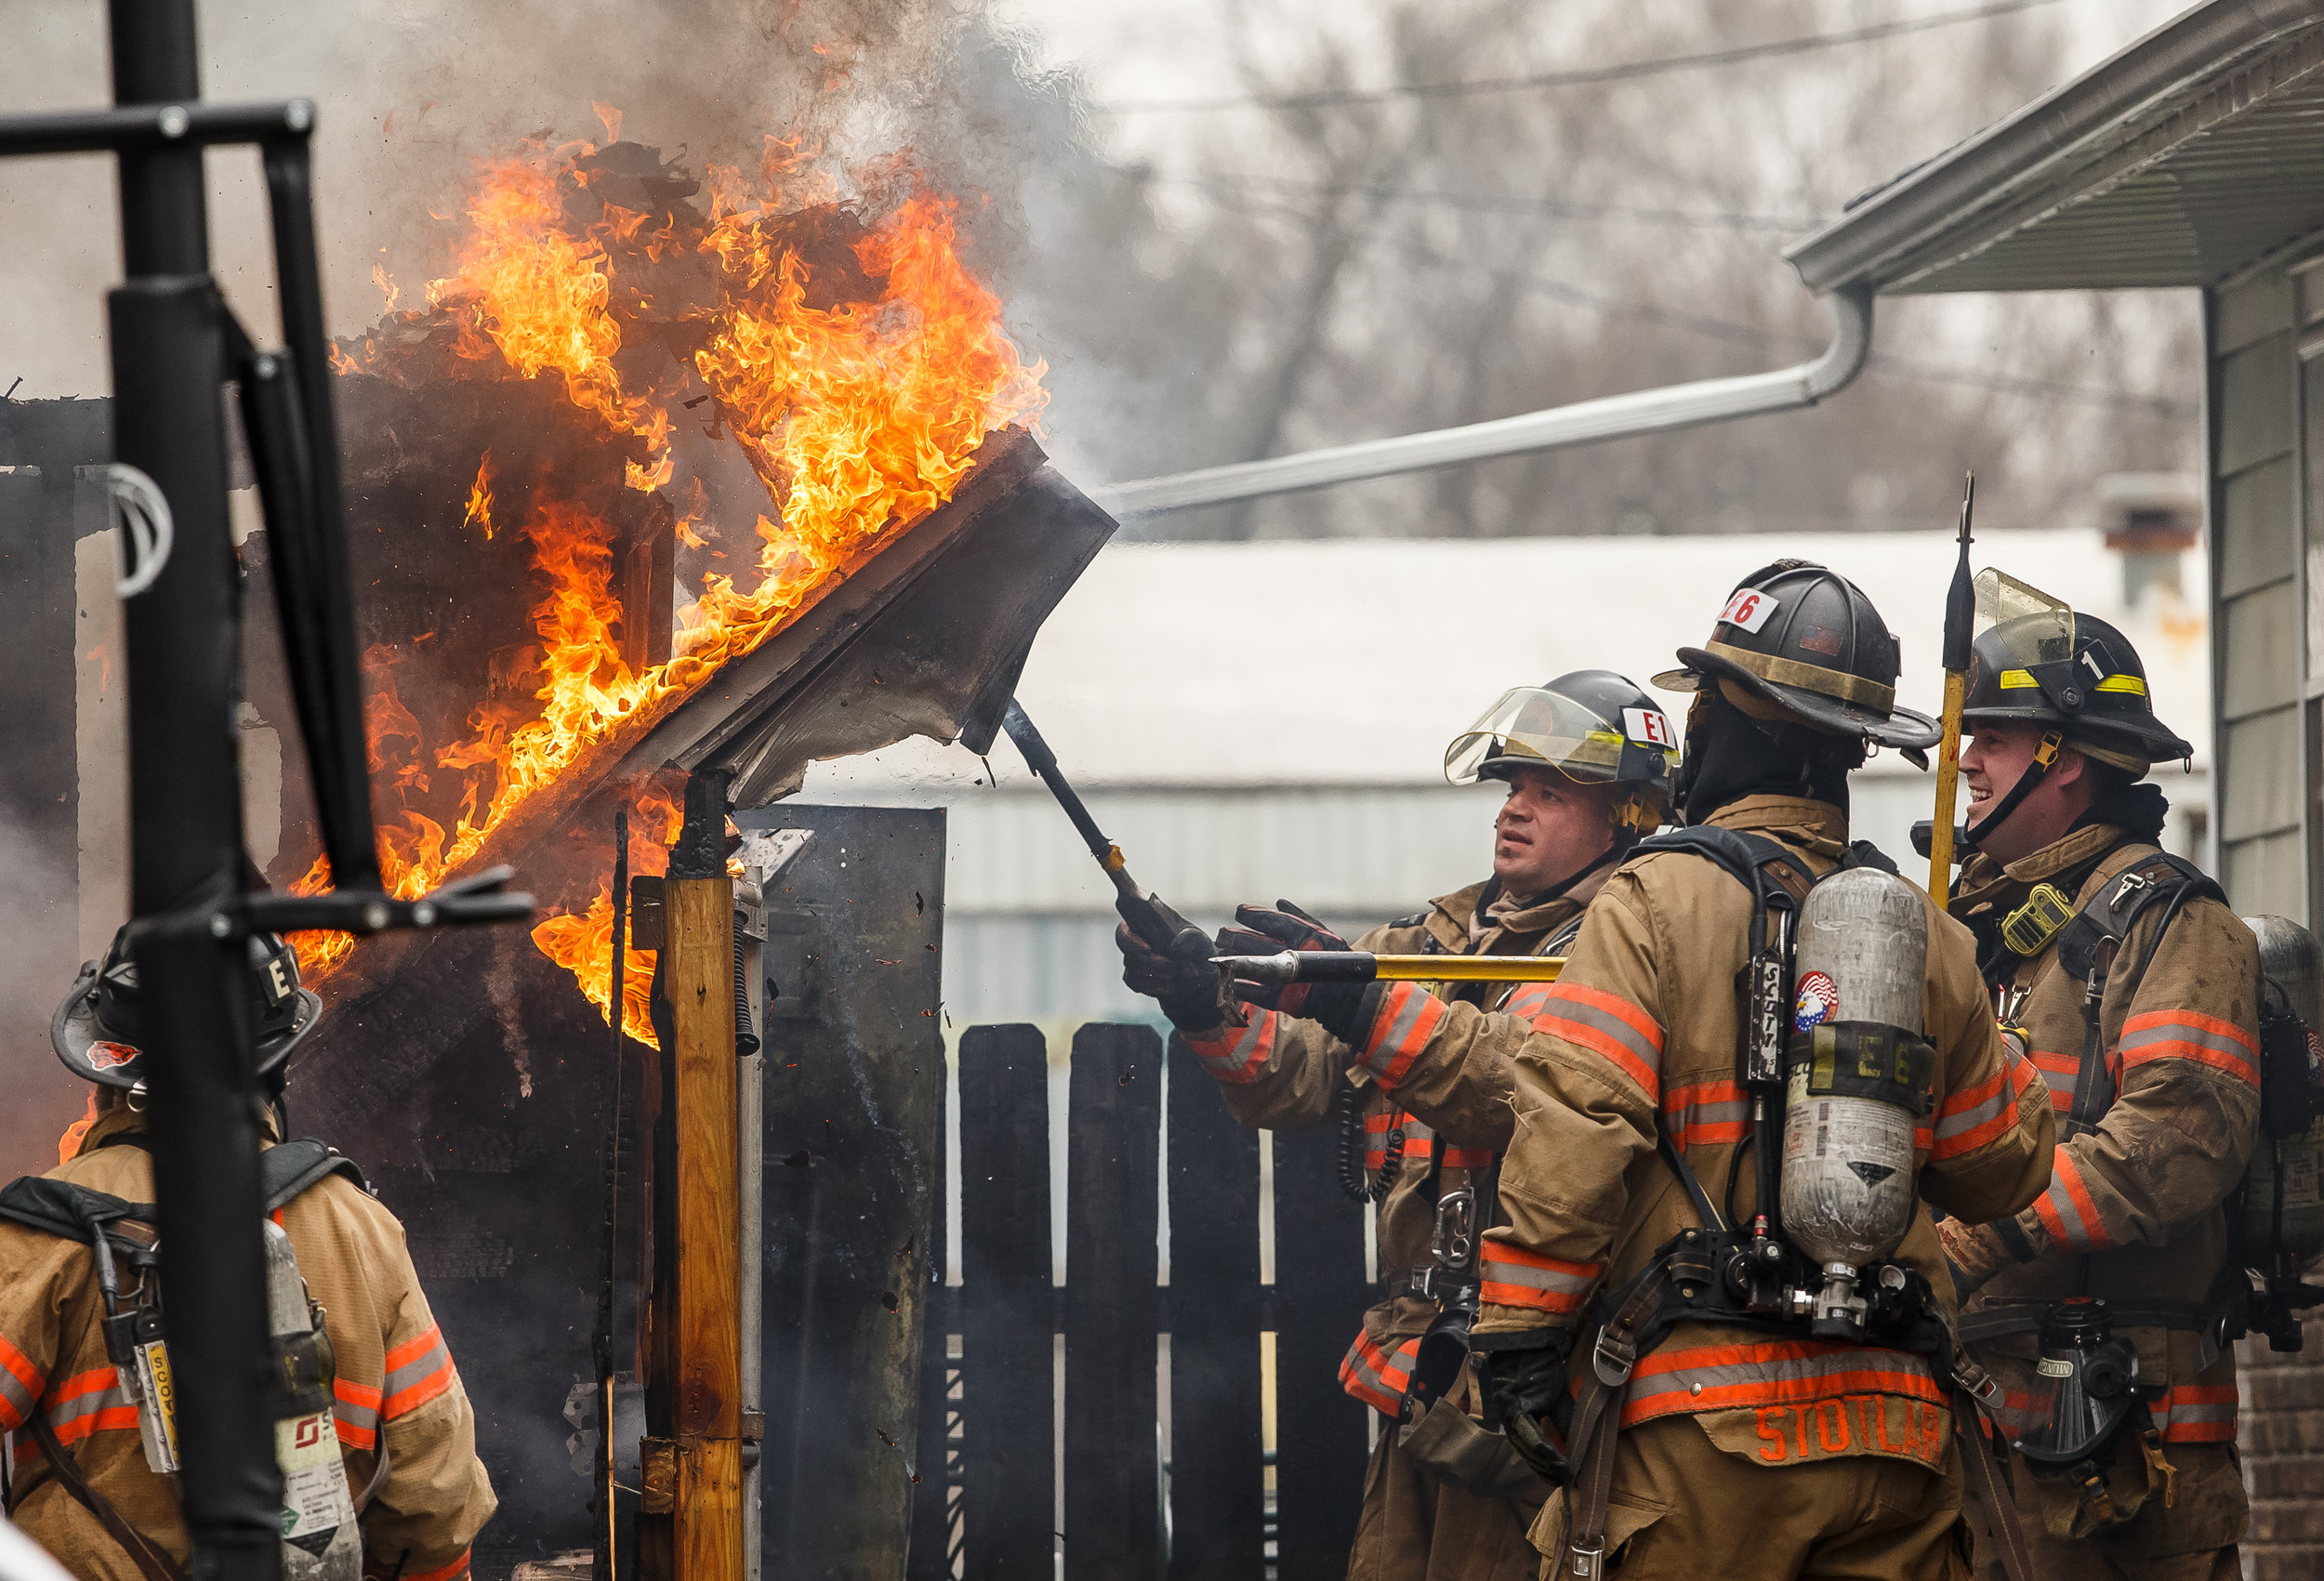 Springfield firefighters pull down the burning frame of a two car detached garage as they work to extinguish the blaze a home in the 3000 block of East Linden Avenue, Sunday, April 22, 2018, in Springfield, Ill. [Justin L. Fowler/The State Journal-Register]